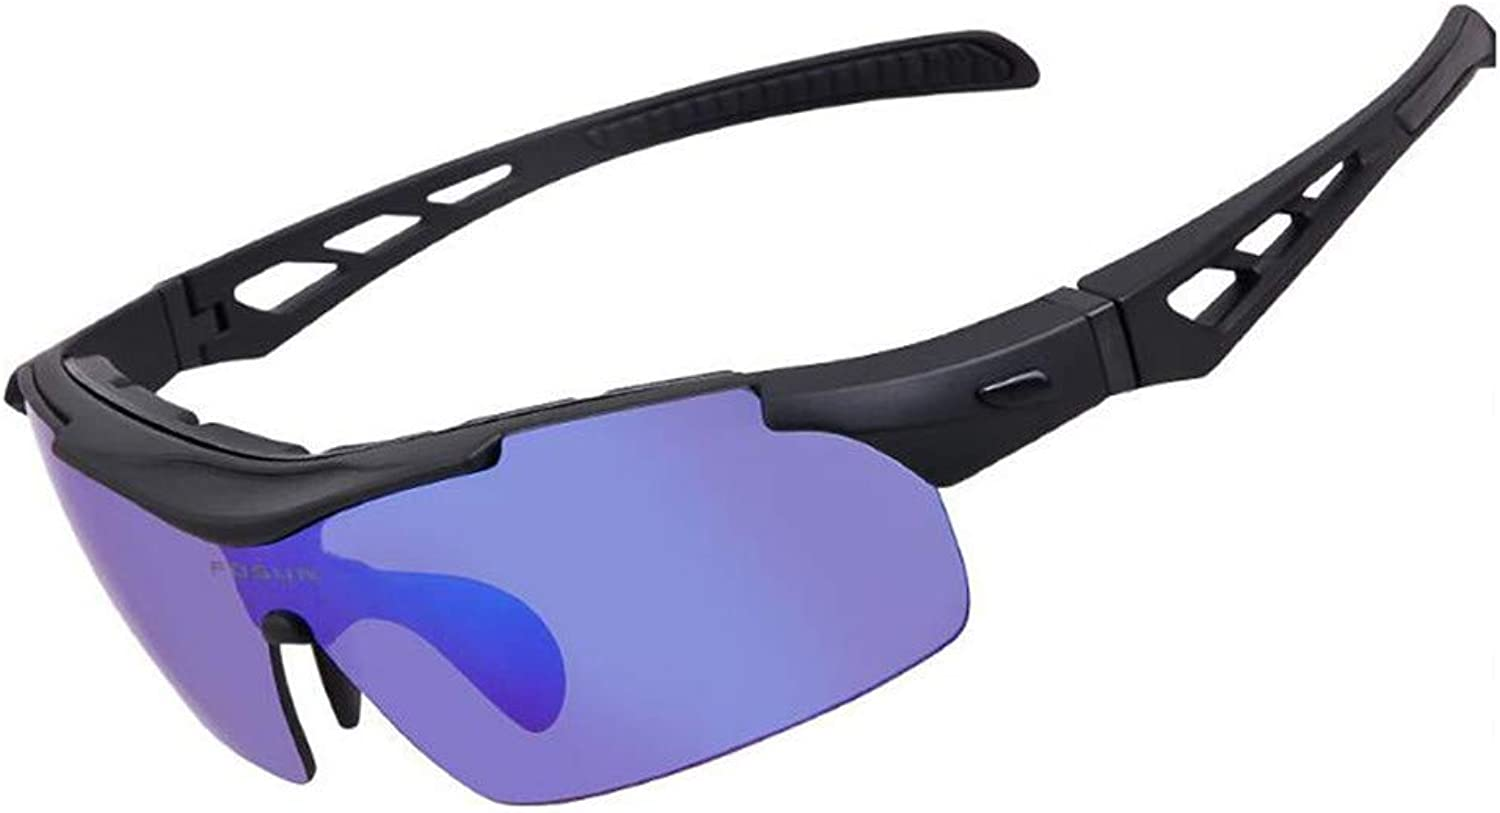 Cycling Glasses Suitable for Cycling, Baseball, Fishing, Ski Running, Sports Sunglasses, Men and Women Cycling Running Driving Glasses Sports Sunglasses